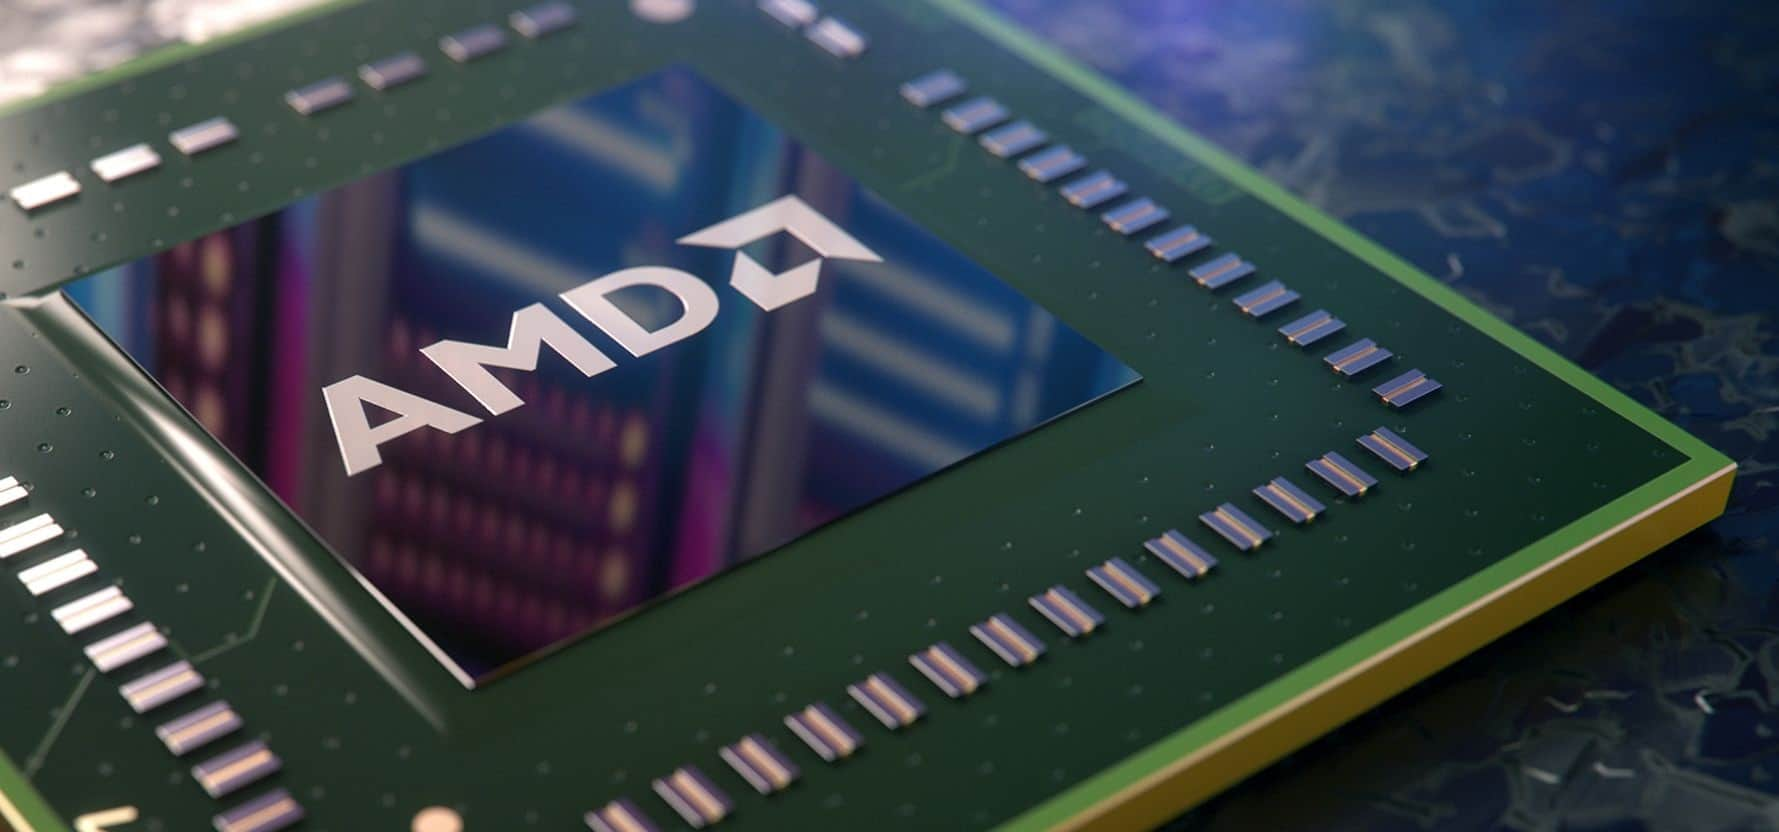 AMD Sharkstooth processor with 32 core 64 threads, clocked at 3.6GHz leaked